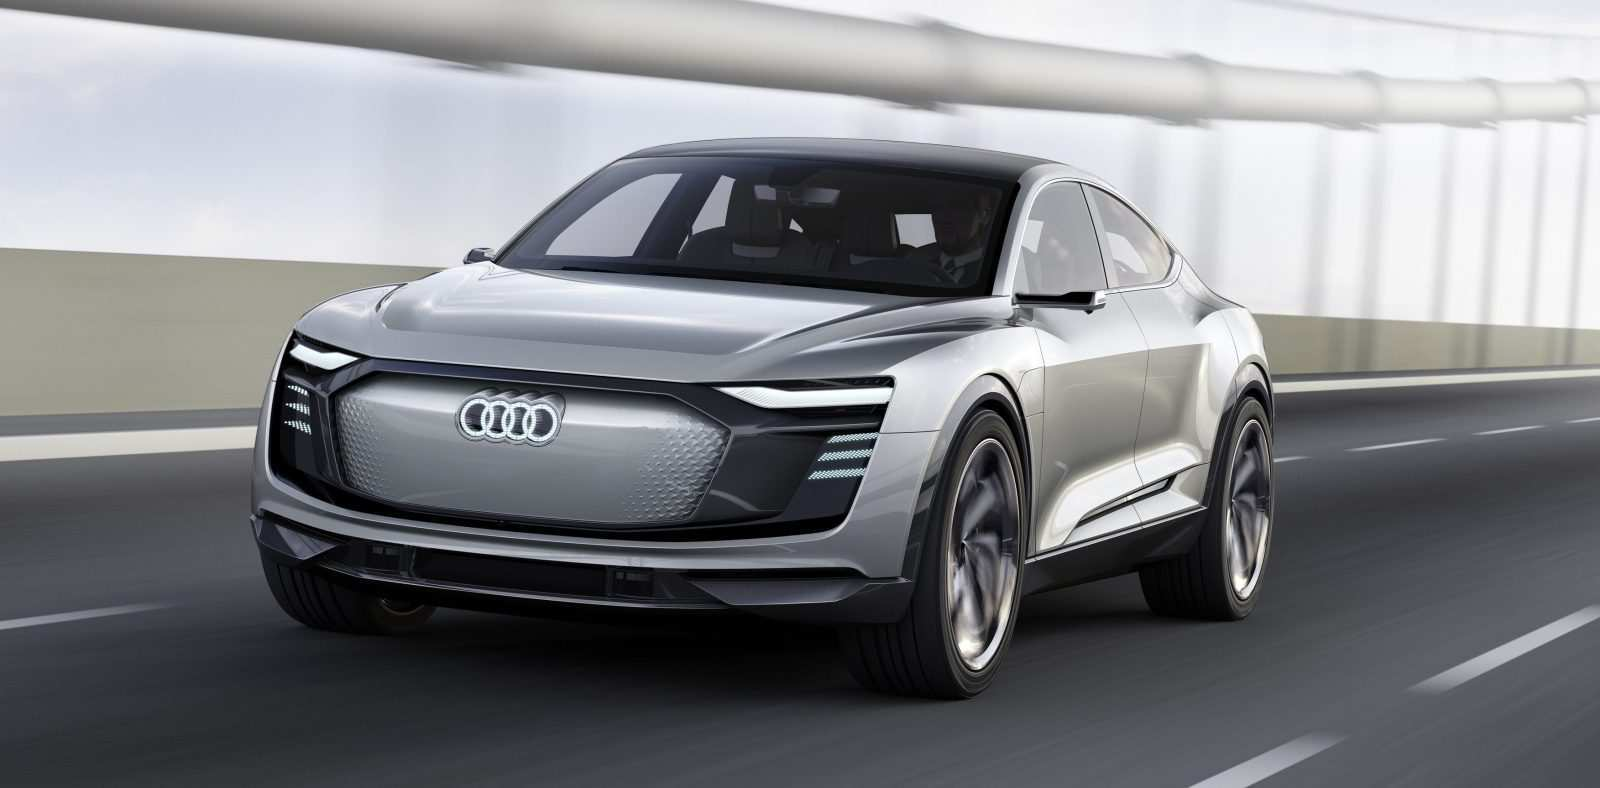 94 The Best Audi Electric Vehicles 2020 Performance And New Engine